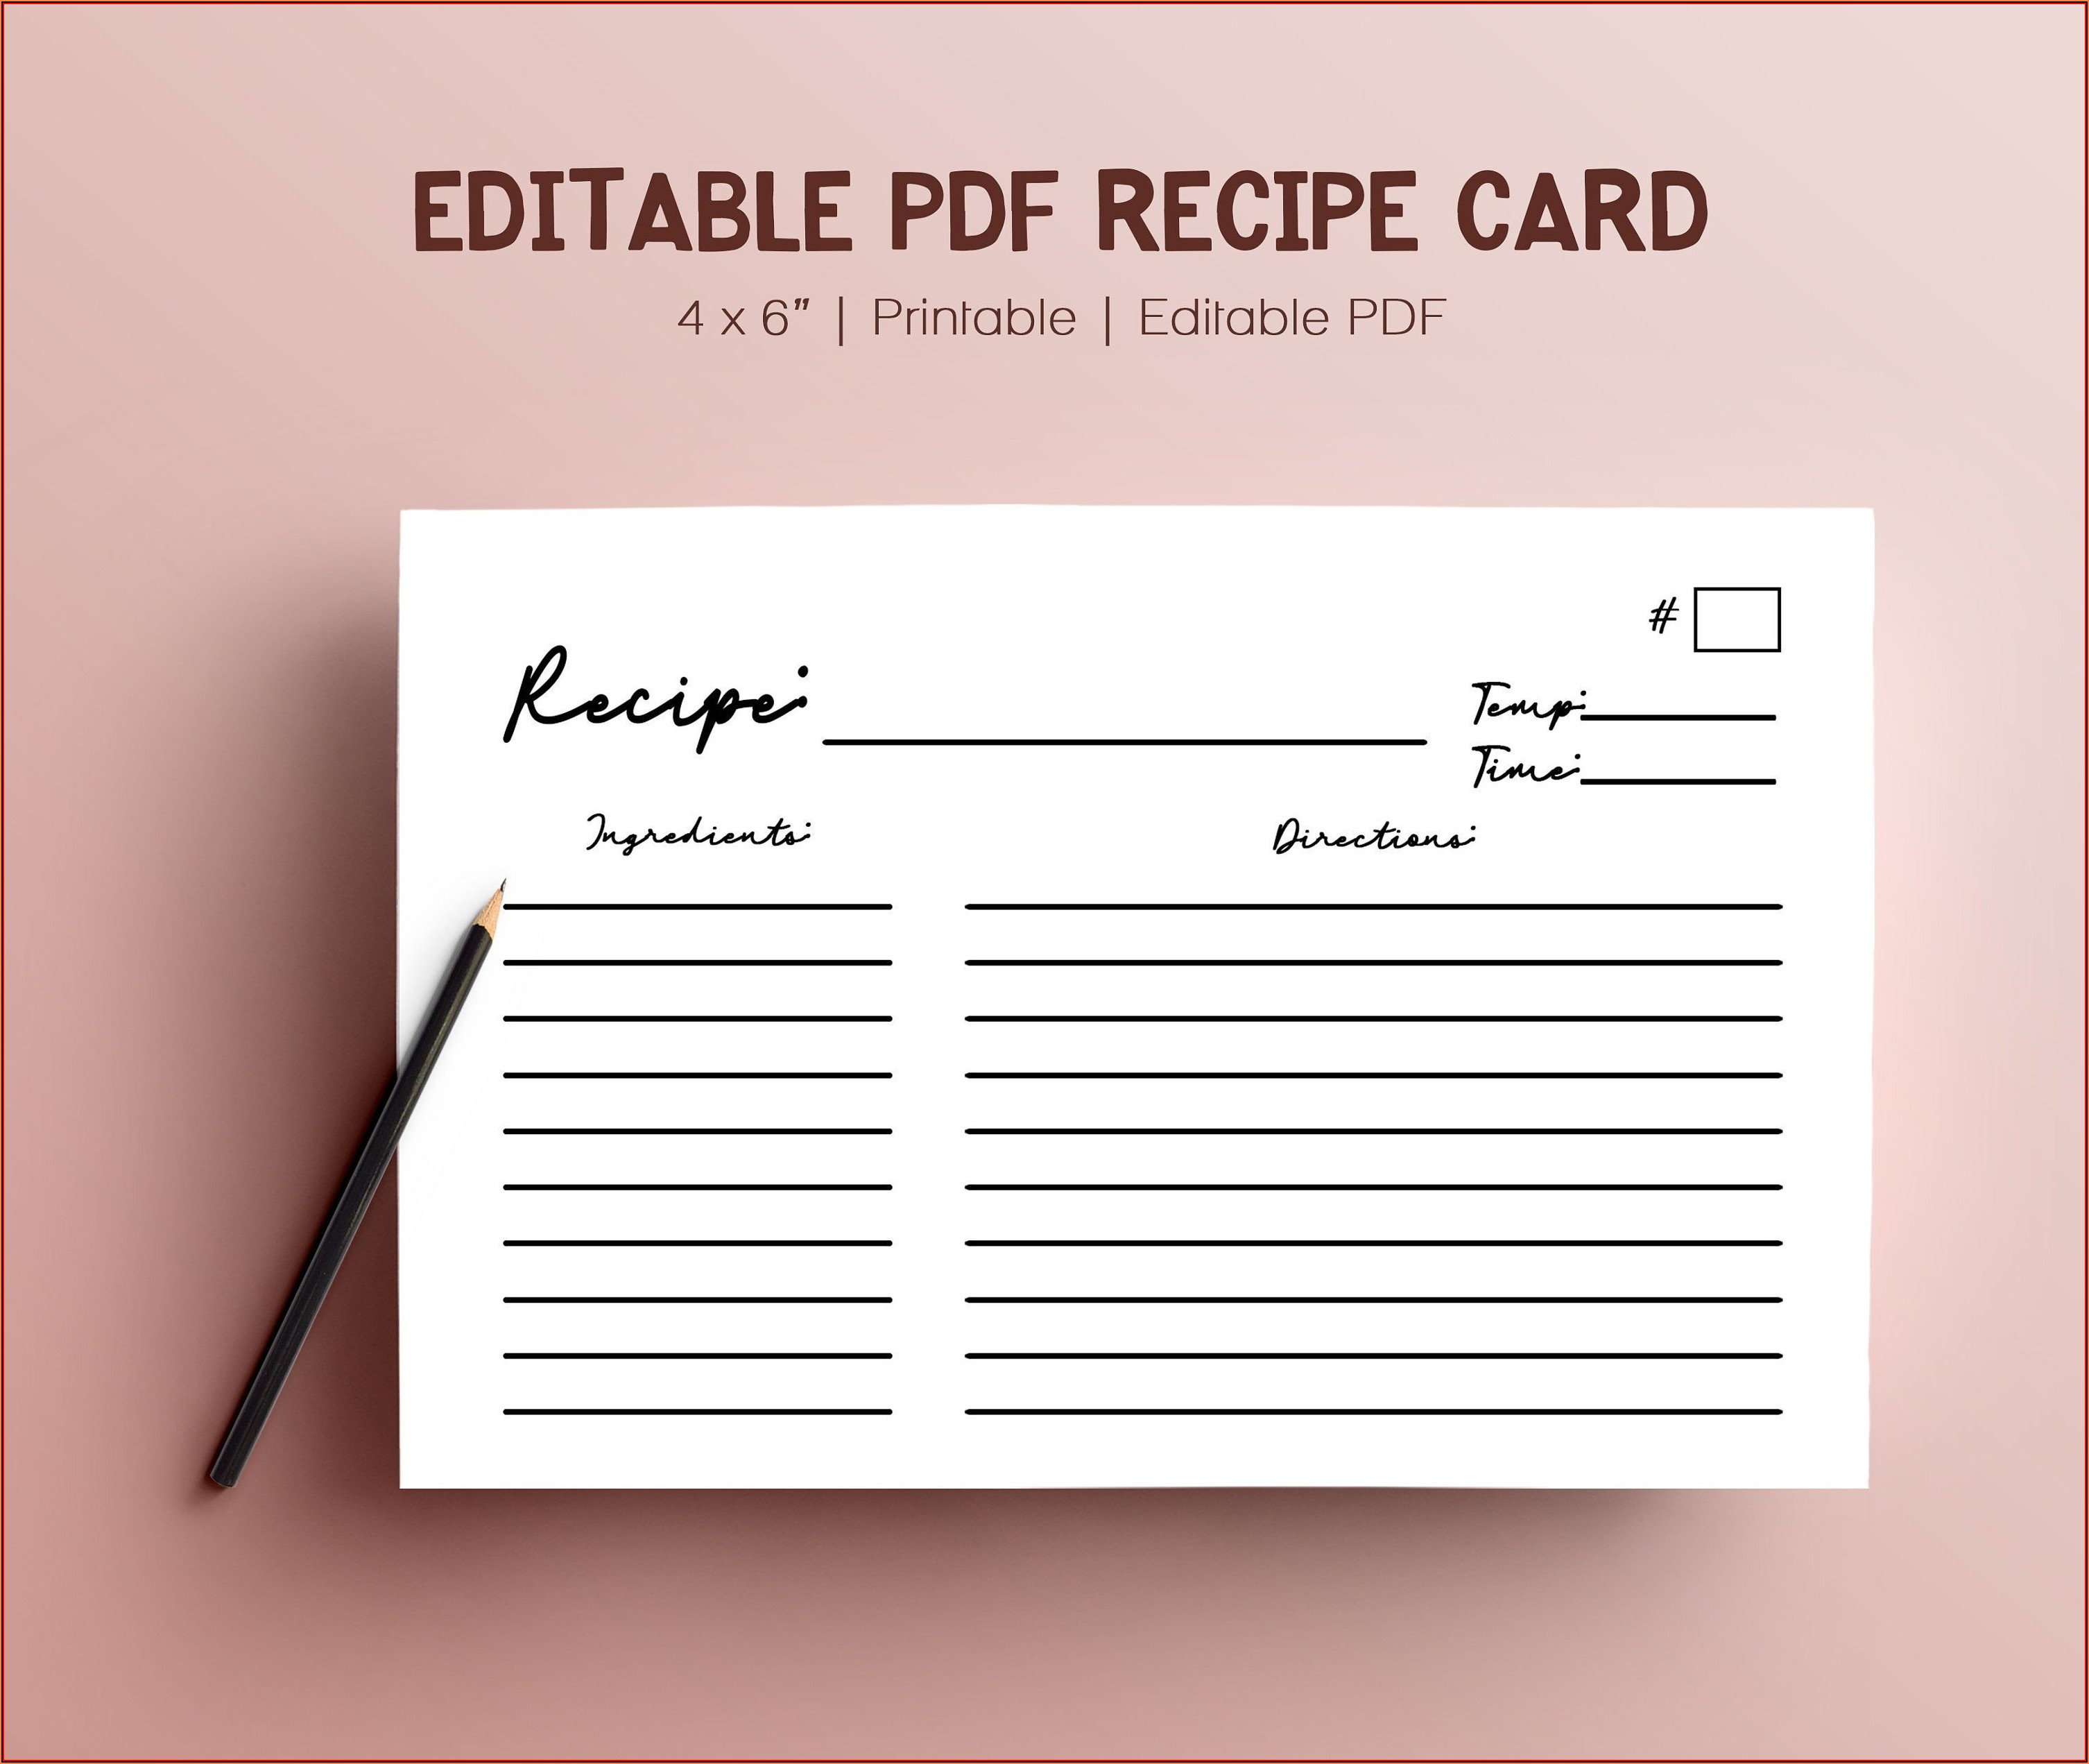 4 X 6 Recipe Card Template Microsoft Word